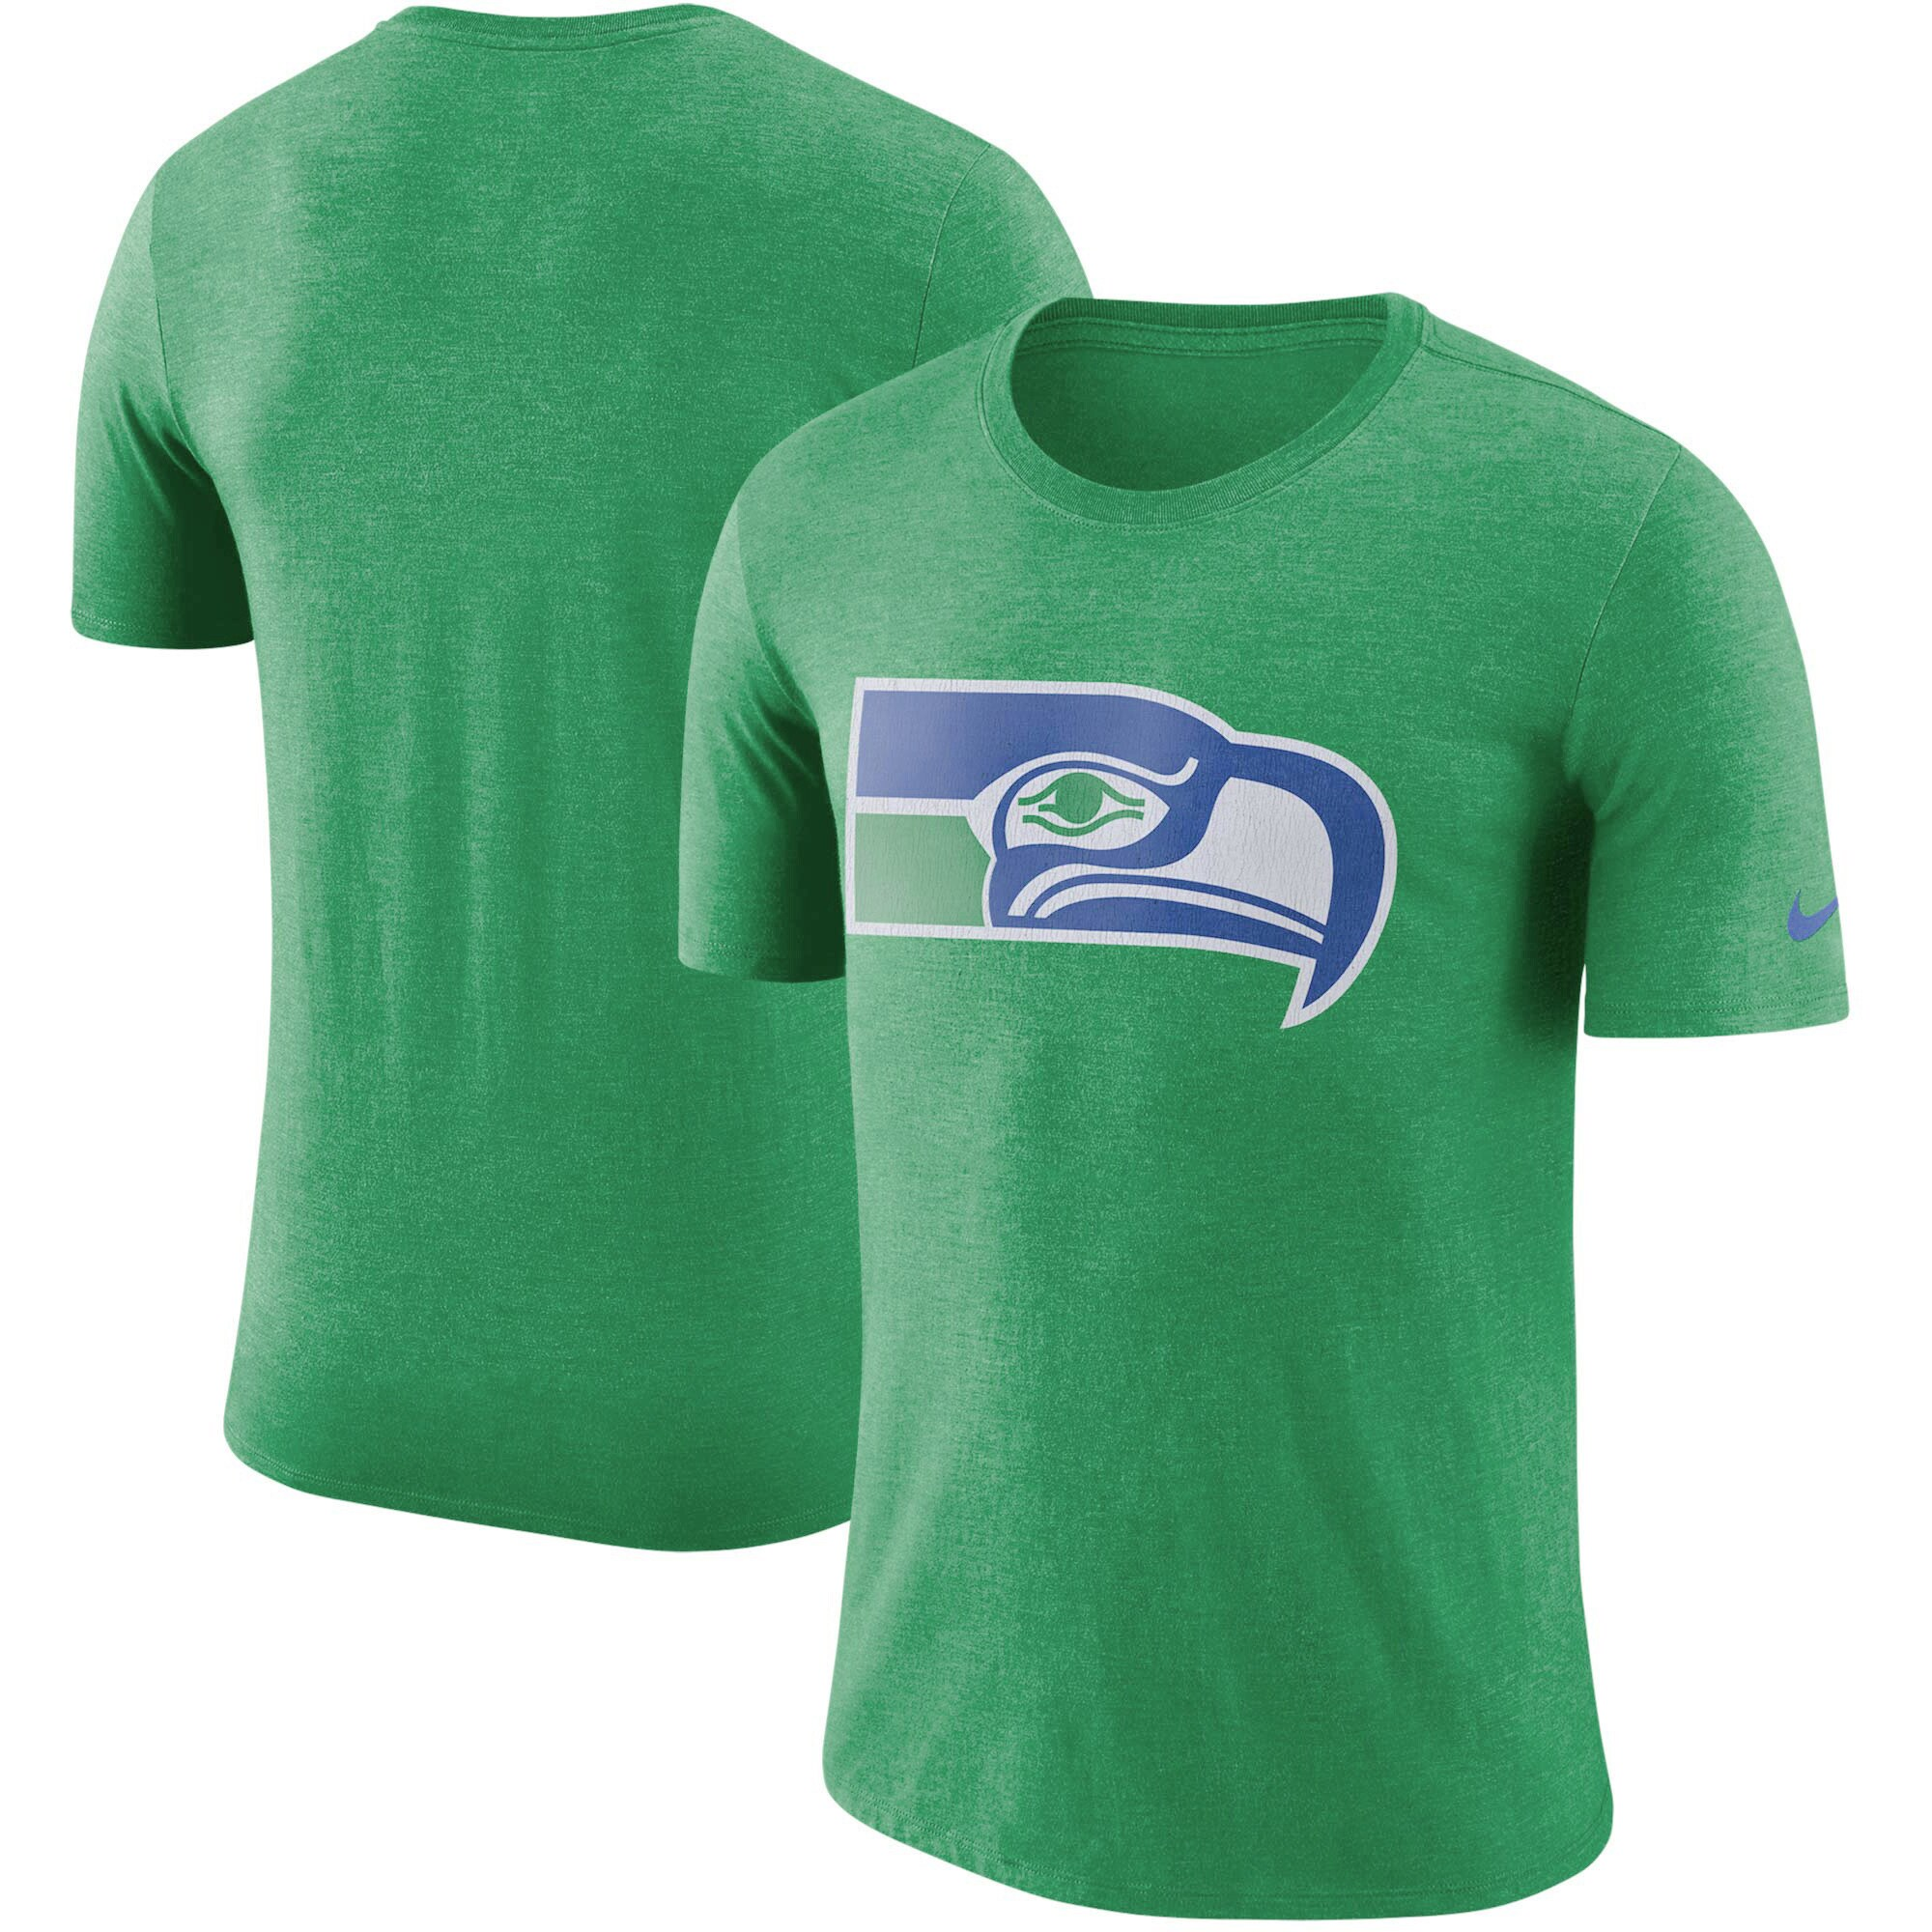 Seattle Seahawks Nike Historic Tri-Blend Crackle T-Shirt - Heathered Kelly Green